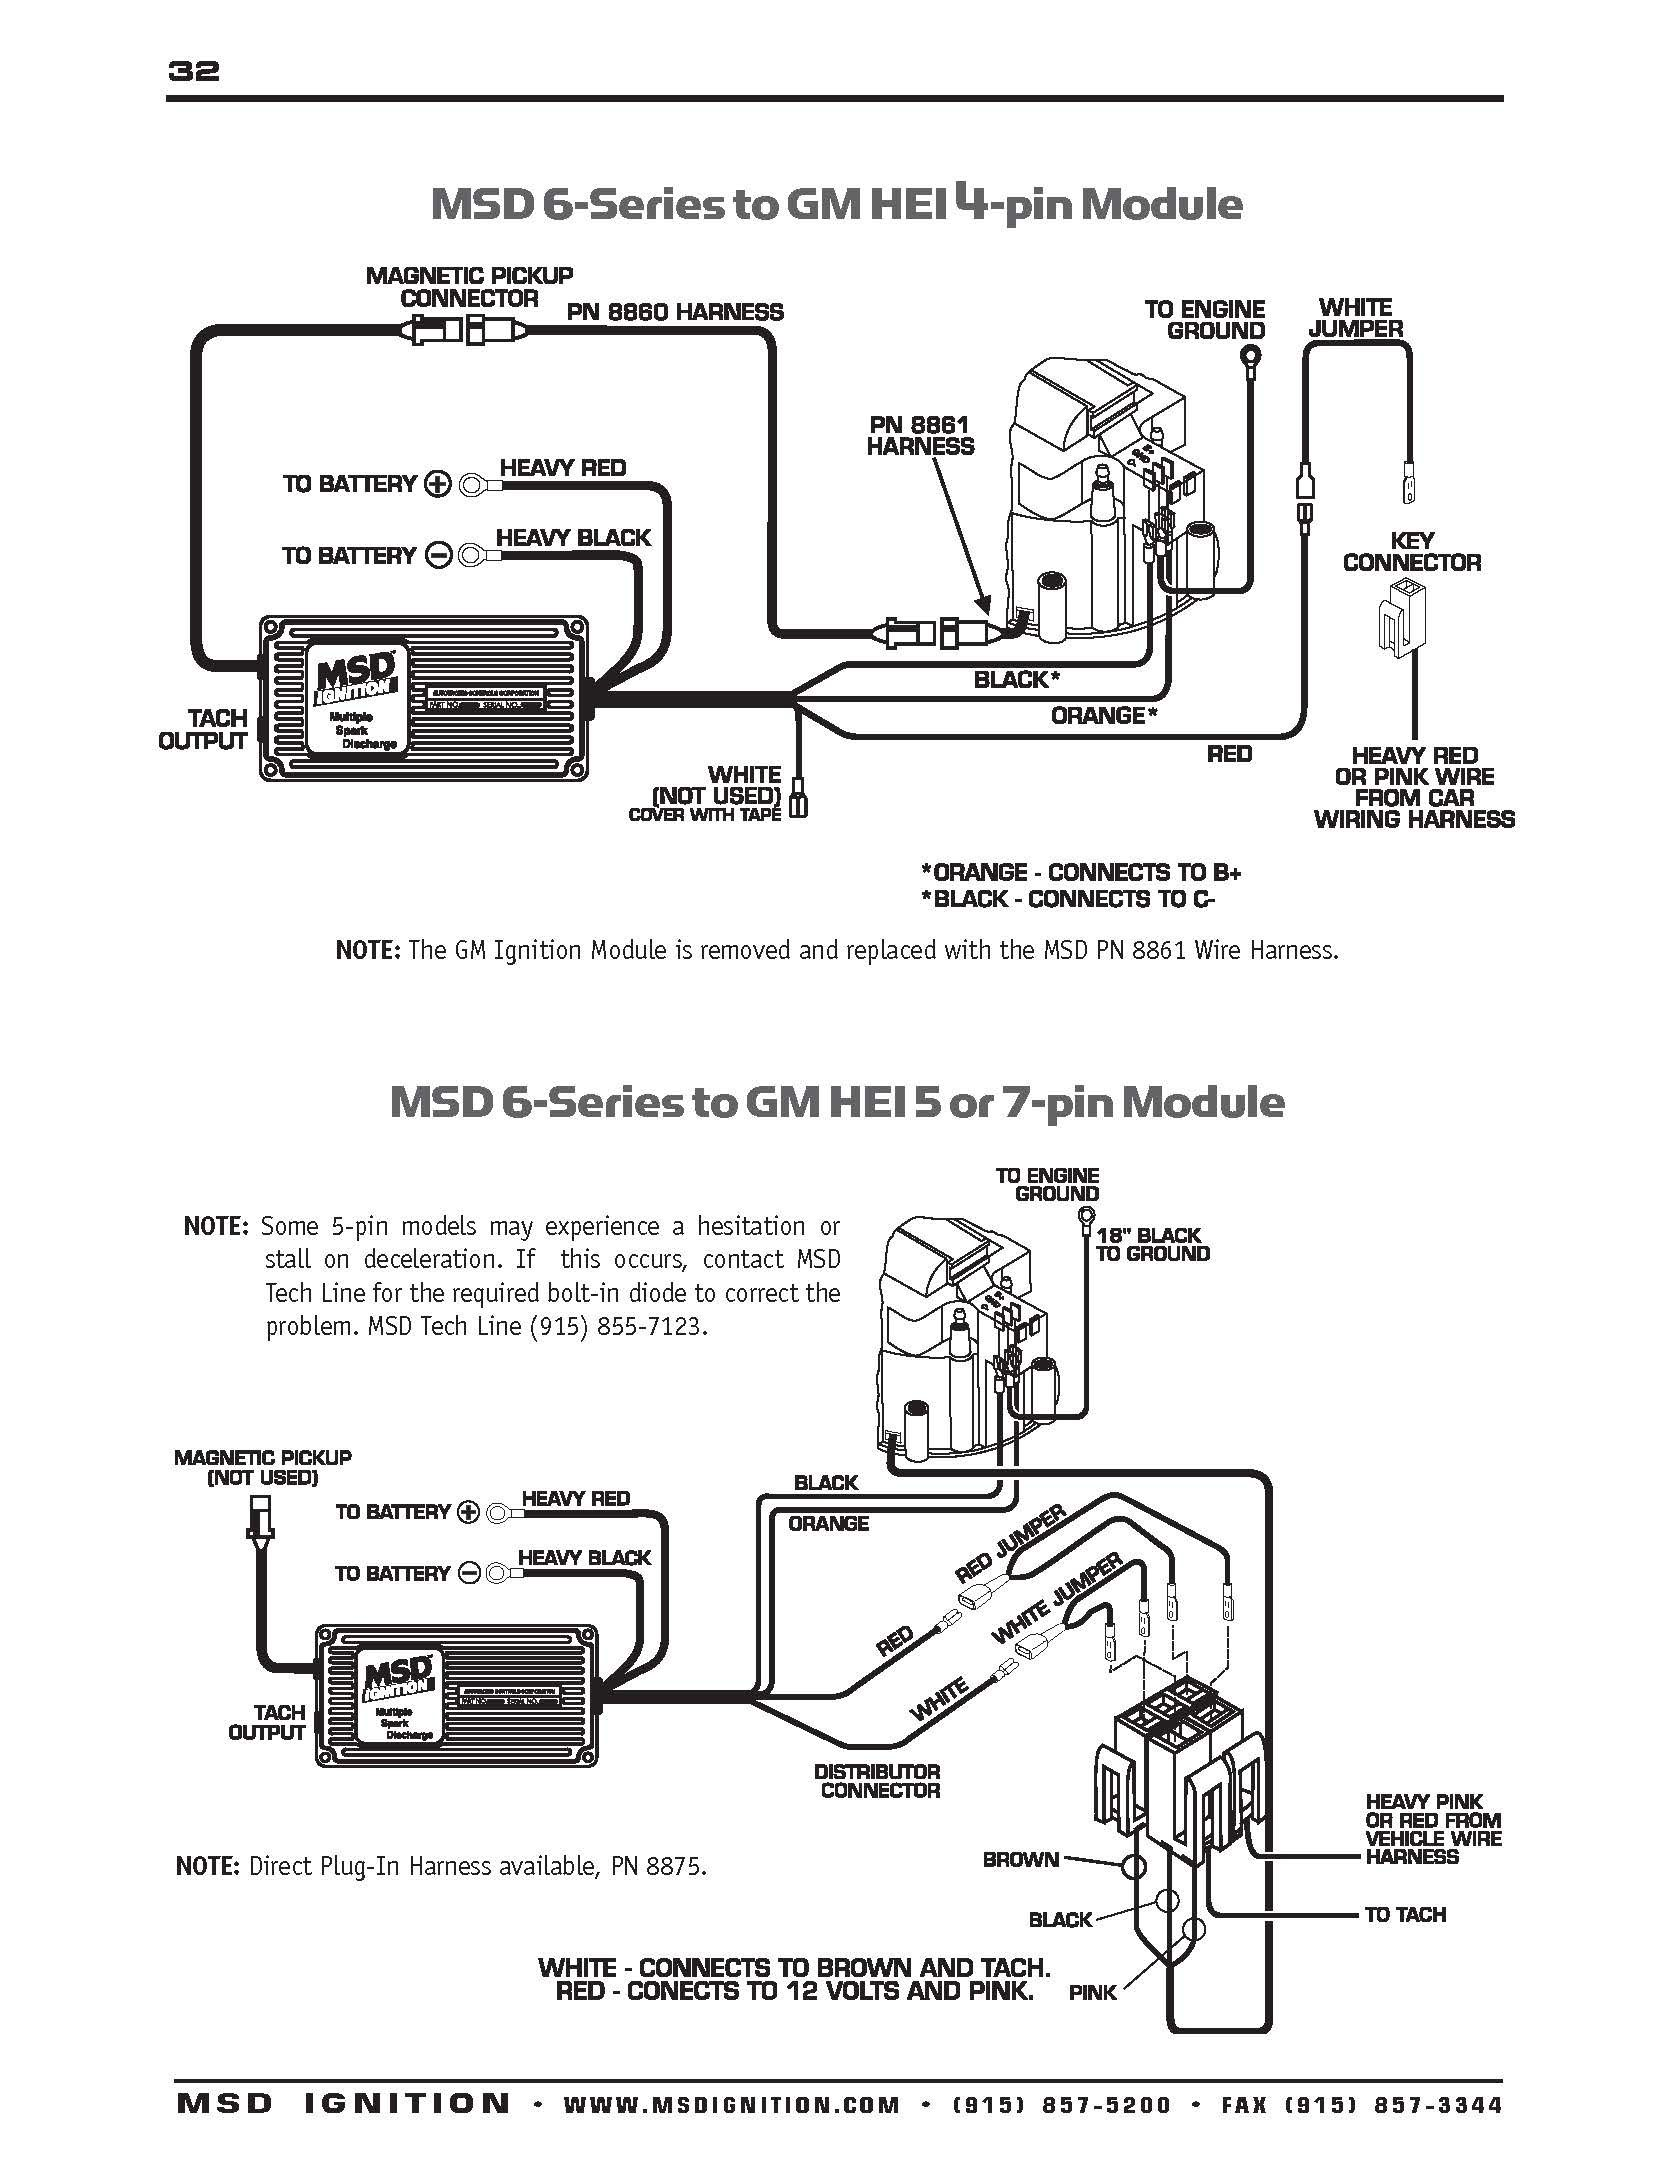 Ford Msd Wiring Diagram | Wiring Diagram Mallory Yl Wiring Diagrams on mallory resistors, mallory battery, mallory electronics, mallory furniture, mallory gauges,